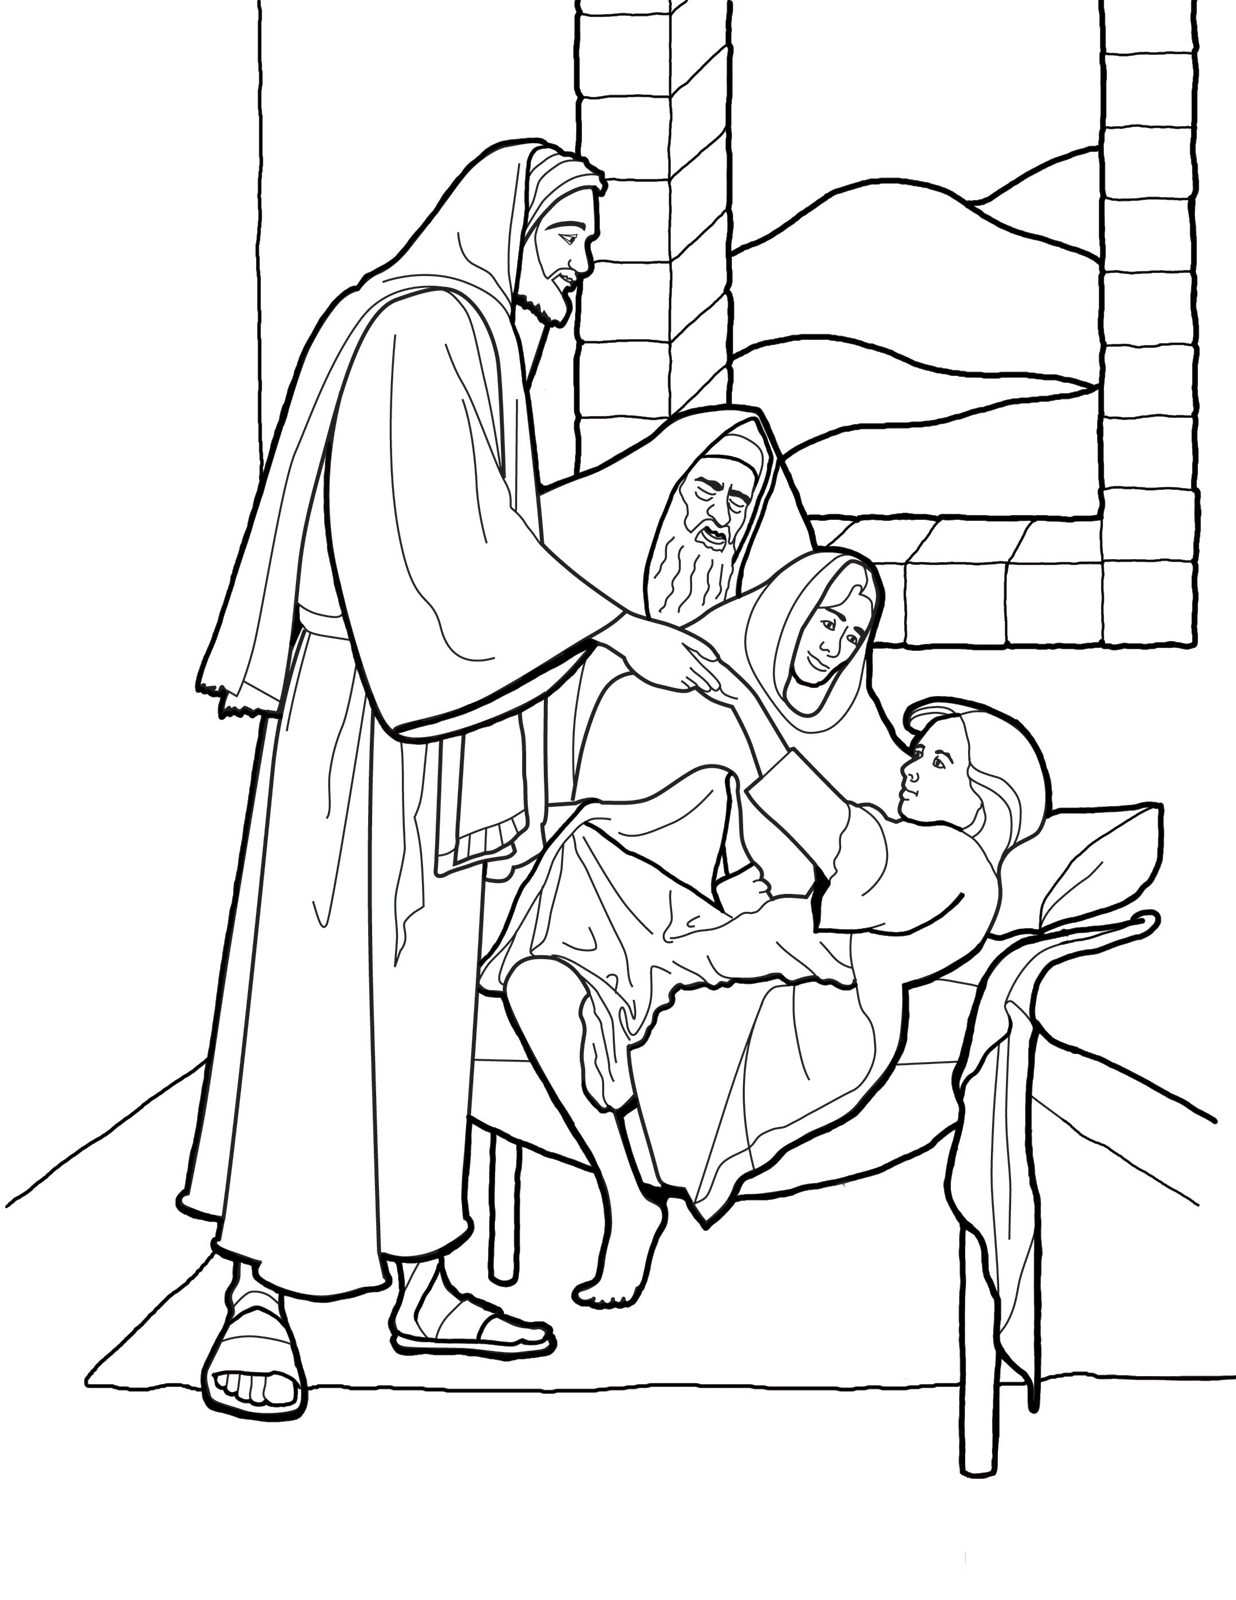 1236x1600 Christ Raising The Daughter Of Jairus Coloring Page